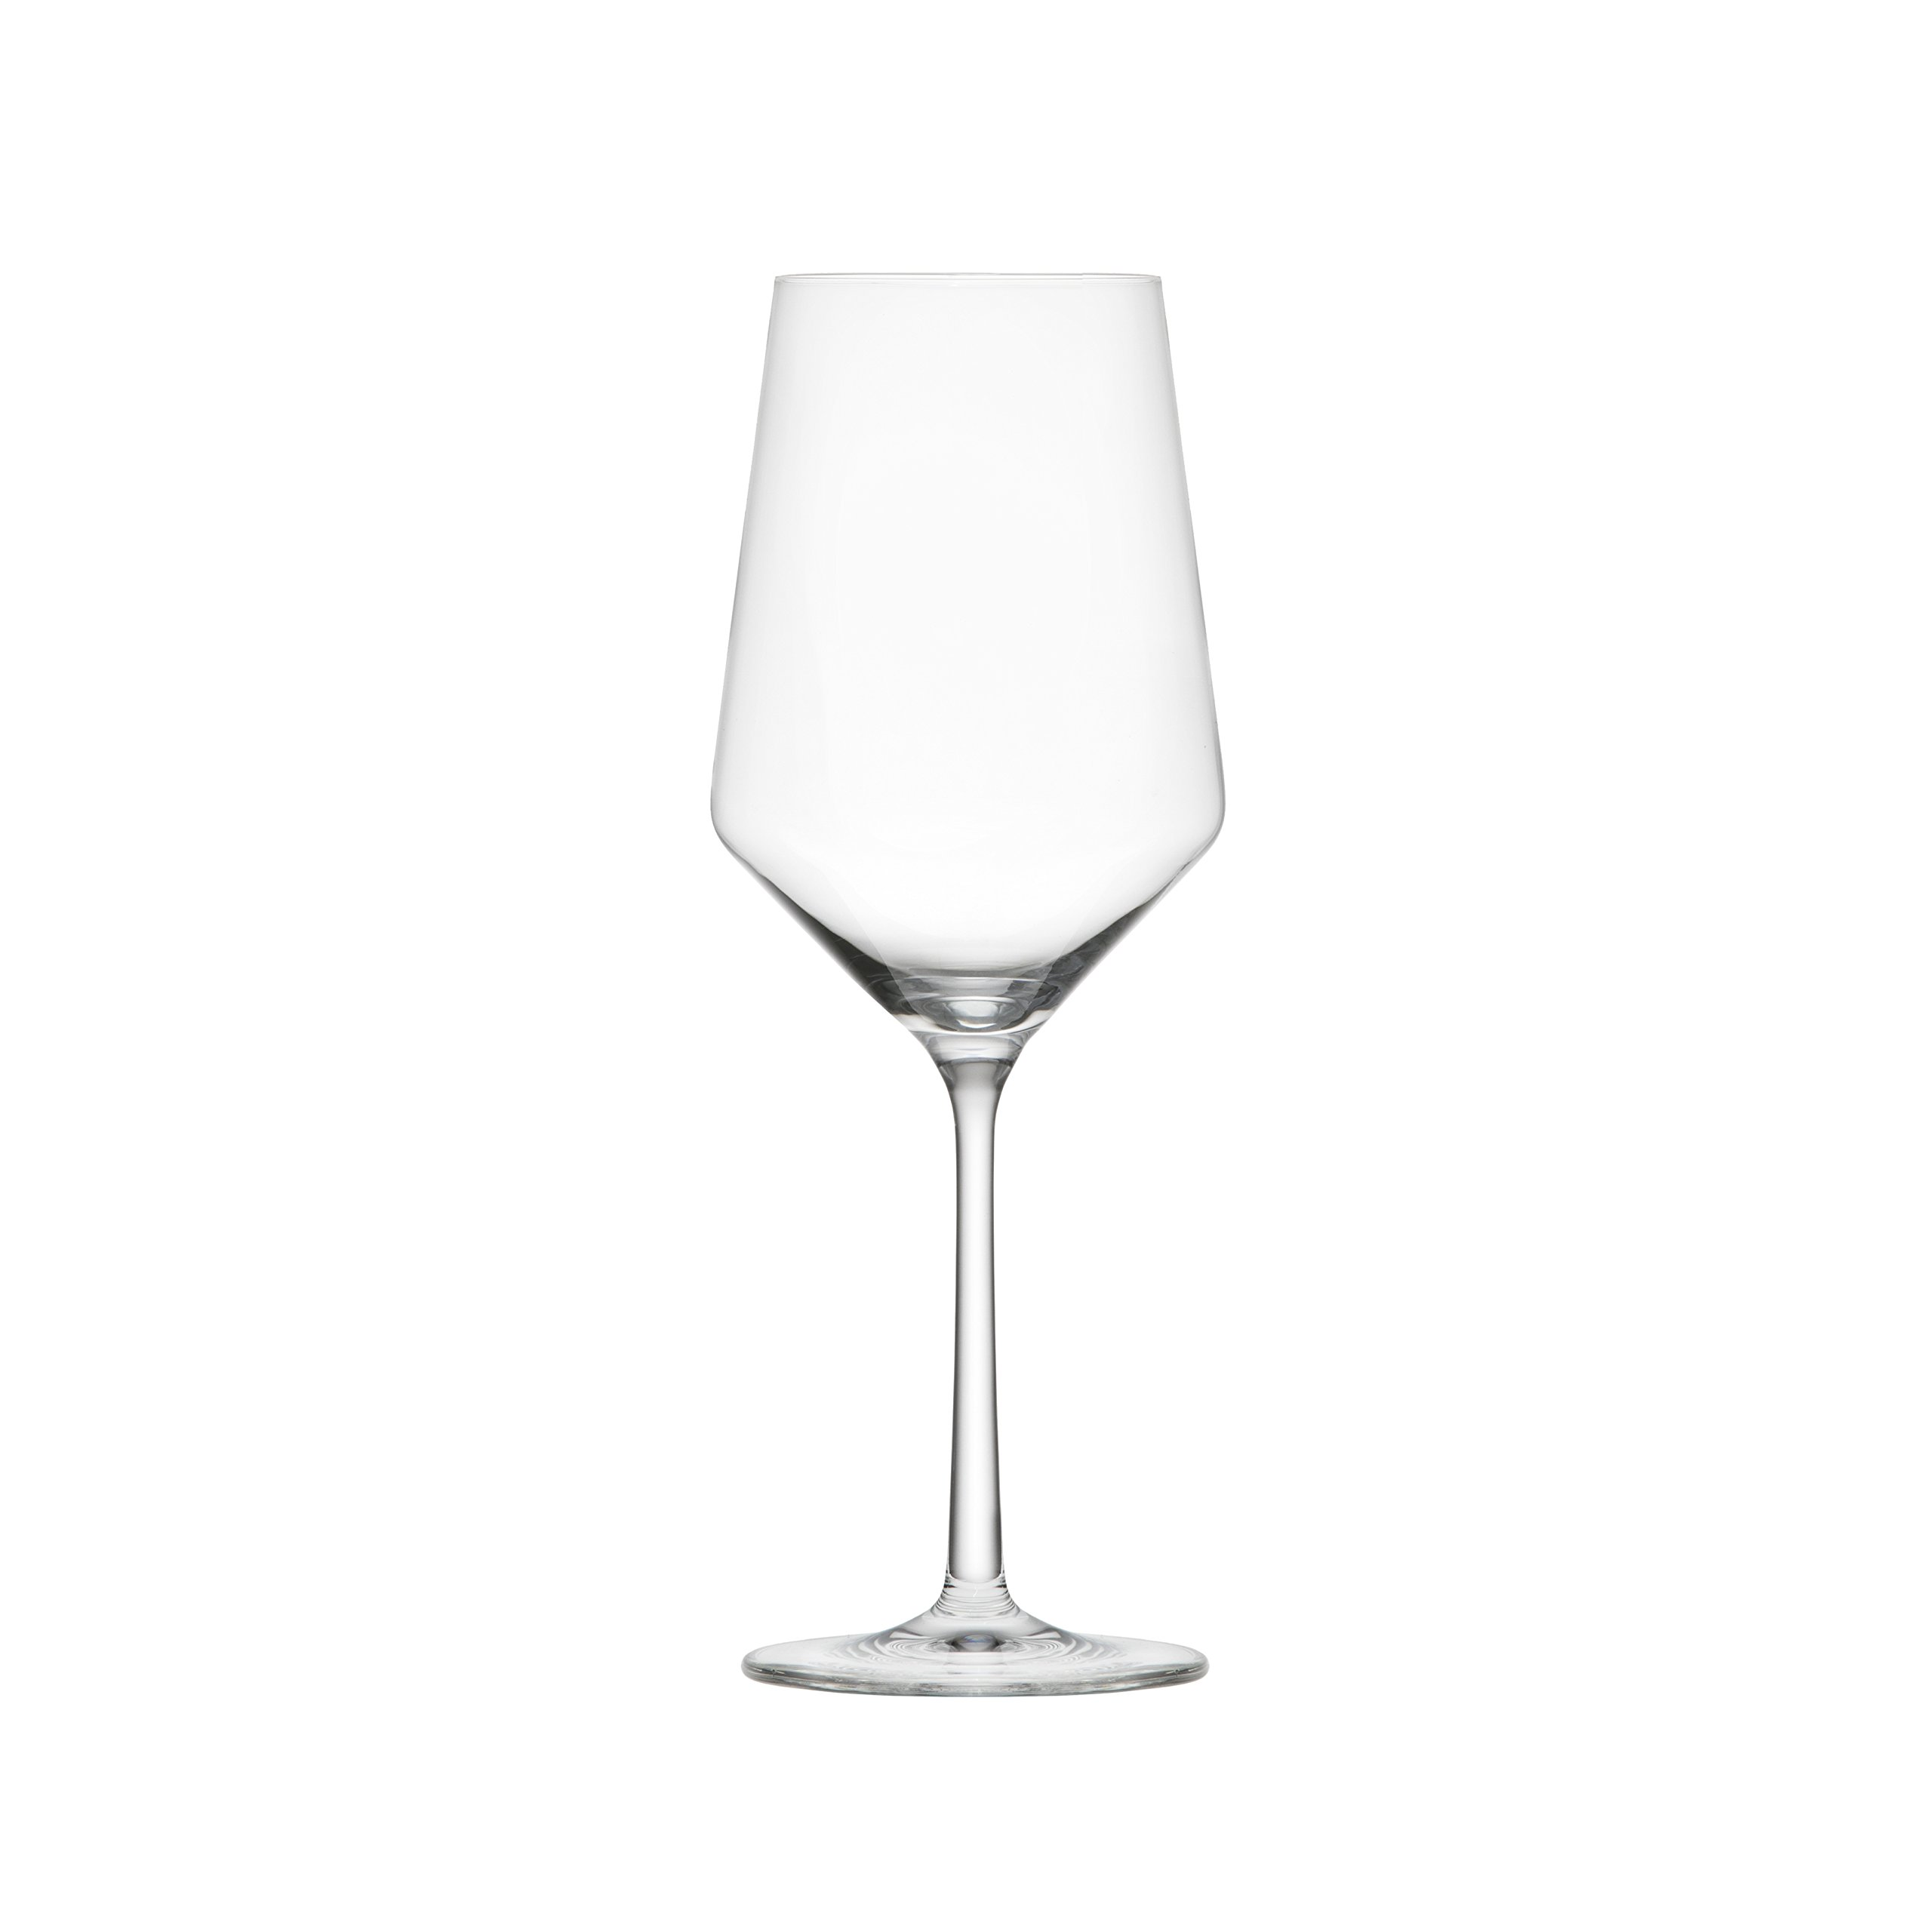 Schott Zwiesel Tritan Crystal Glass Pure Stemware Collection Cabernet Red Wine Glass, 18.2-Ounce, Set of 6 by Schott Zwiesel